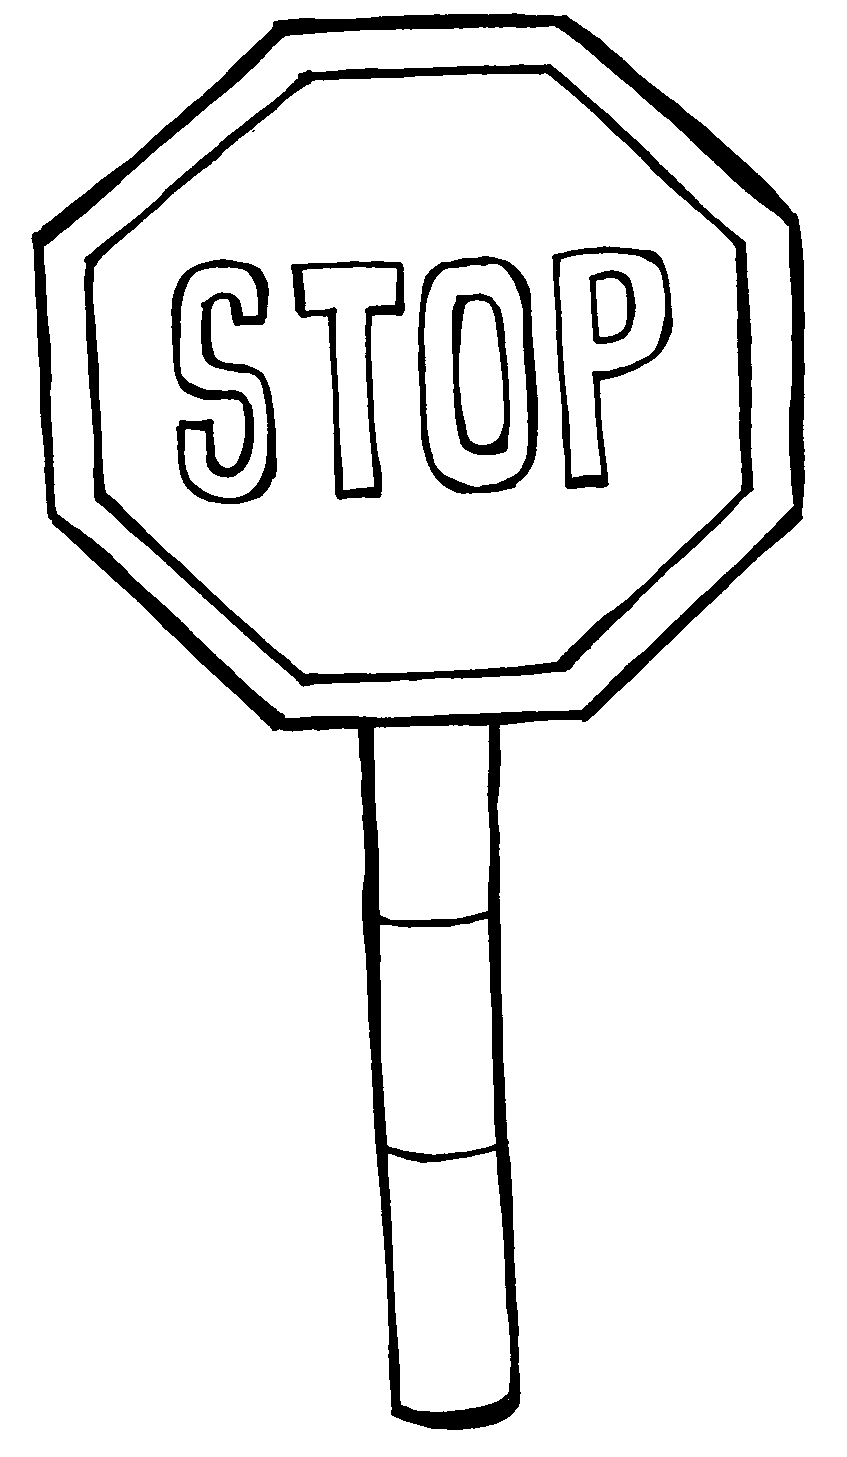 image relating to Printable Picture of a Stop Sign referred to as Hold Out Indicators Coloring Web pages at  Absolutely free for